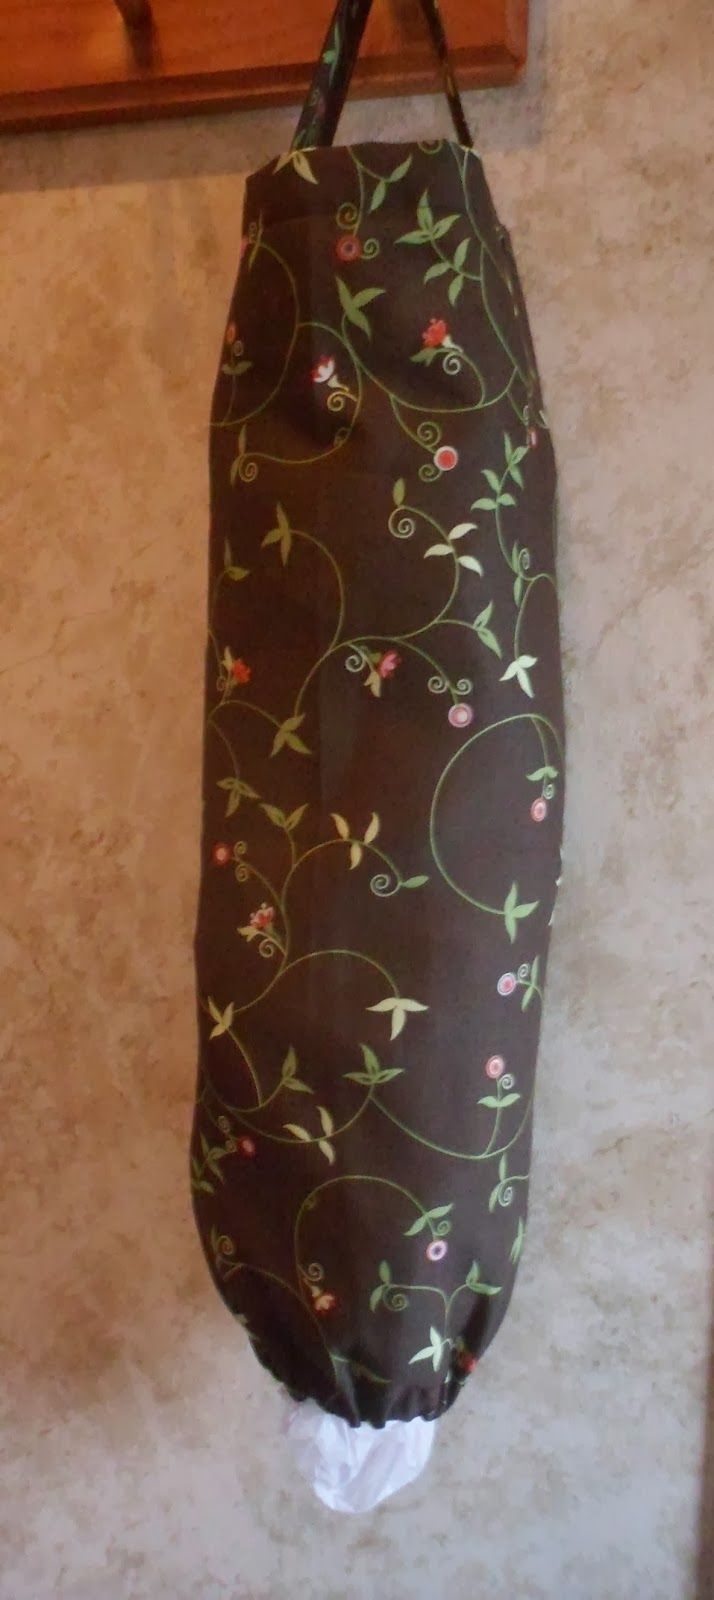 FREE PATTERN:  A Stitch At A Time for Amy B Stitched: Fat Quarter Plastic Bag Holder Pattern w/ Photo Tutorial